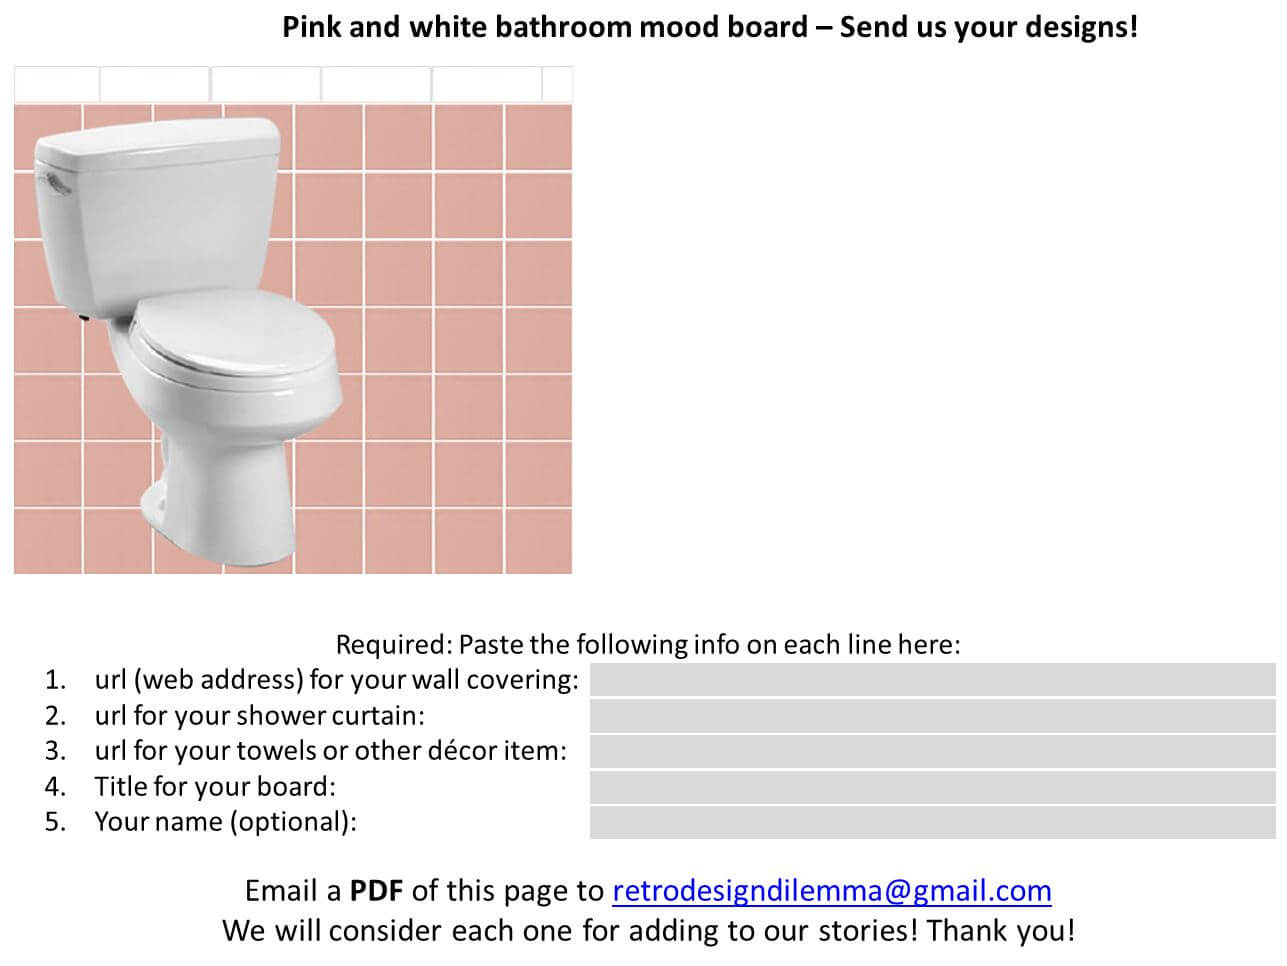 Great  ideas to decorate a pink and white bathroom